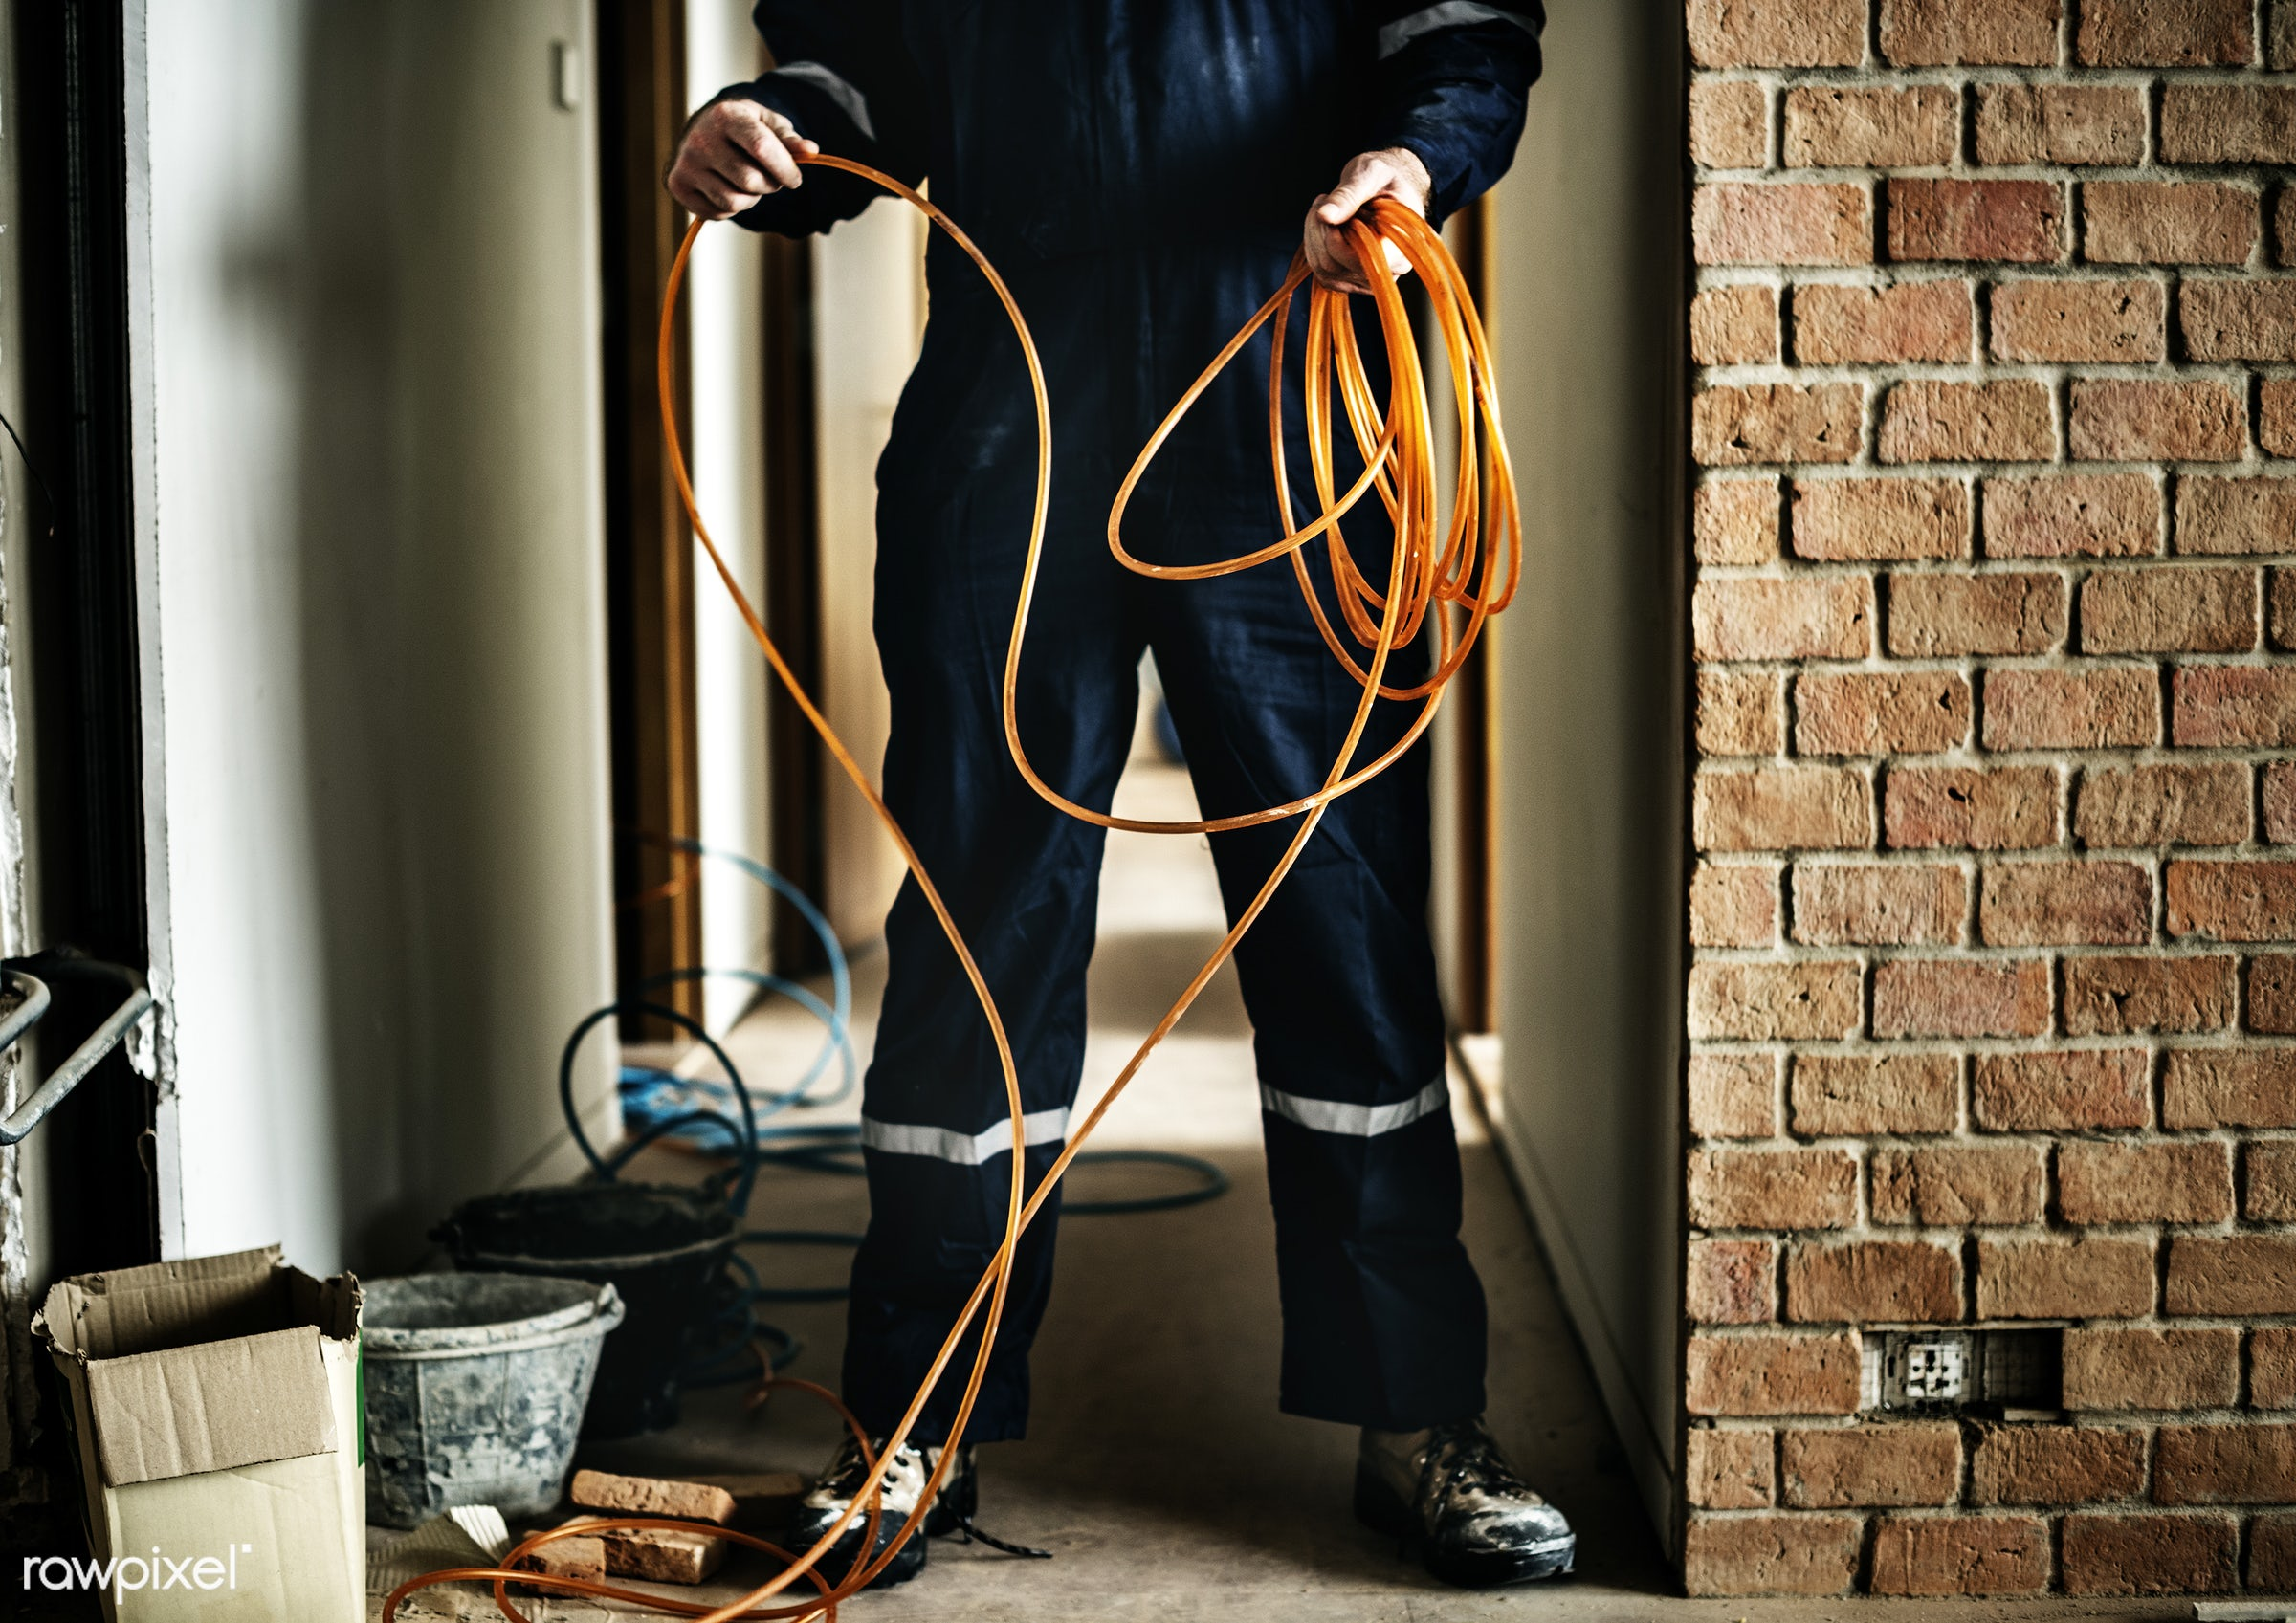 home, technician, development, tool, equipment, workplace, house, technical, engineering, installation, electrician,...